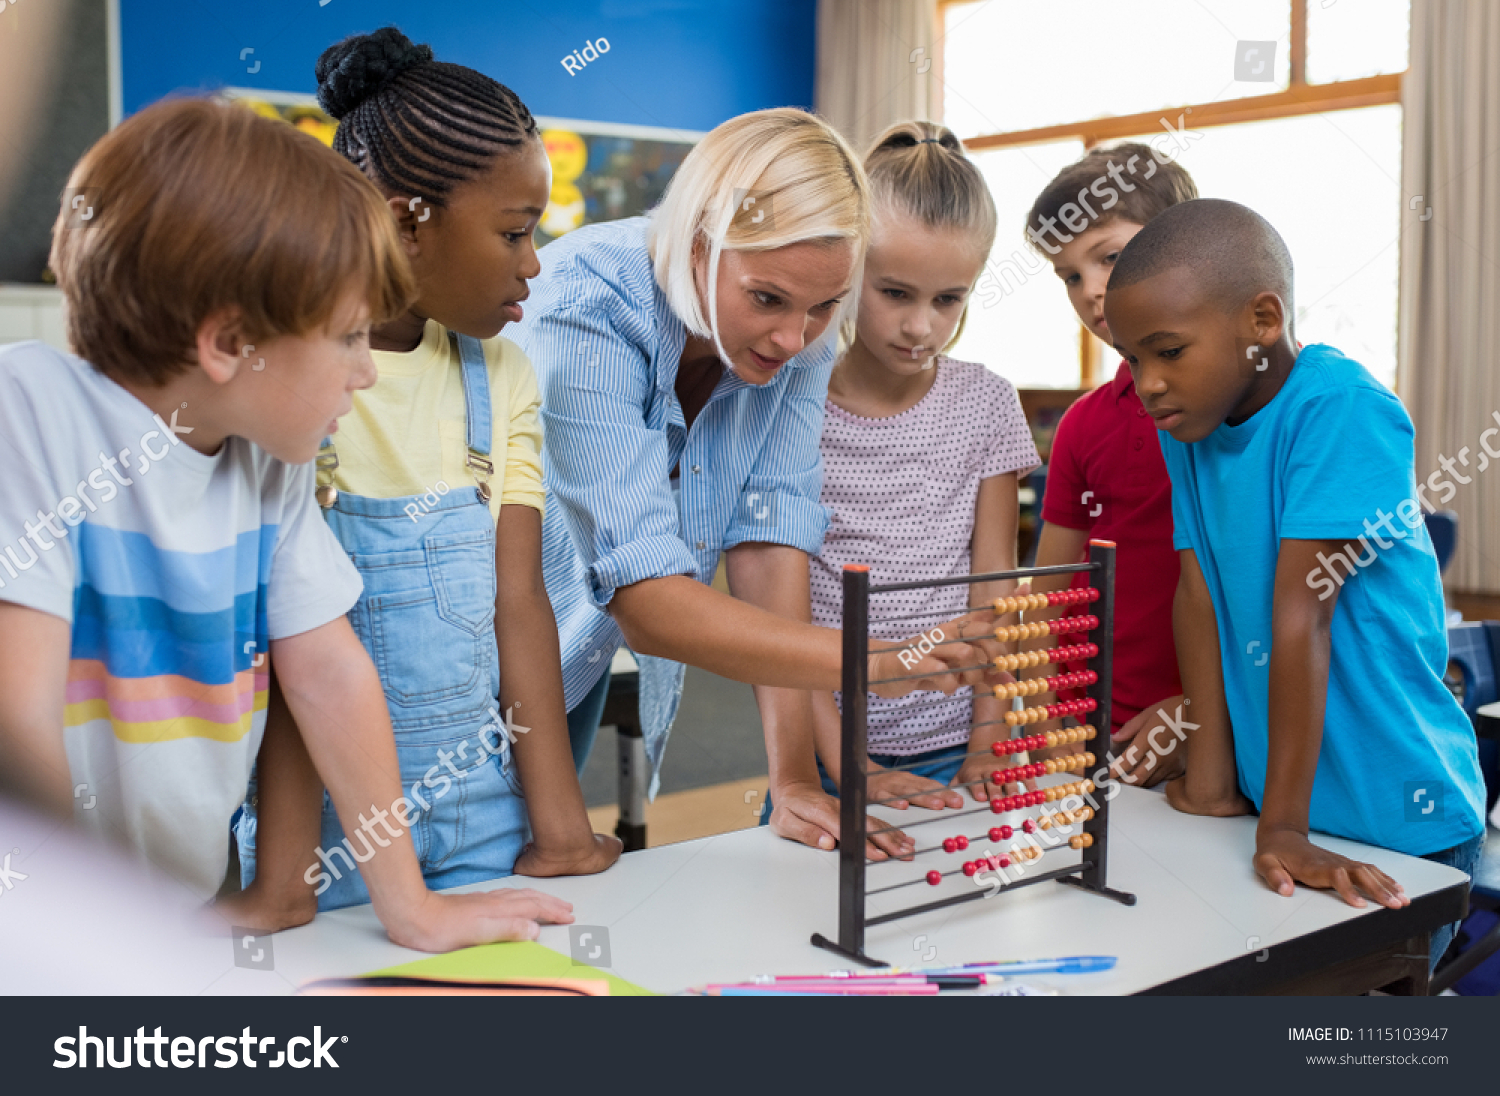 Teacher Teaching Children Math On Abacus Stock Photo (Royalty Free ...